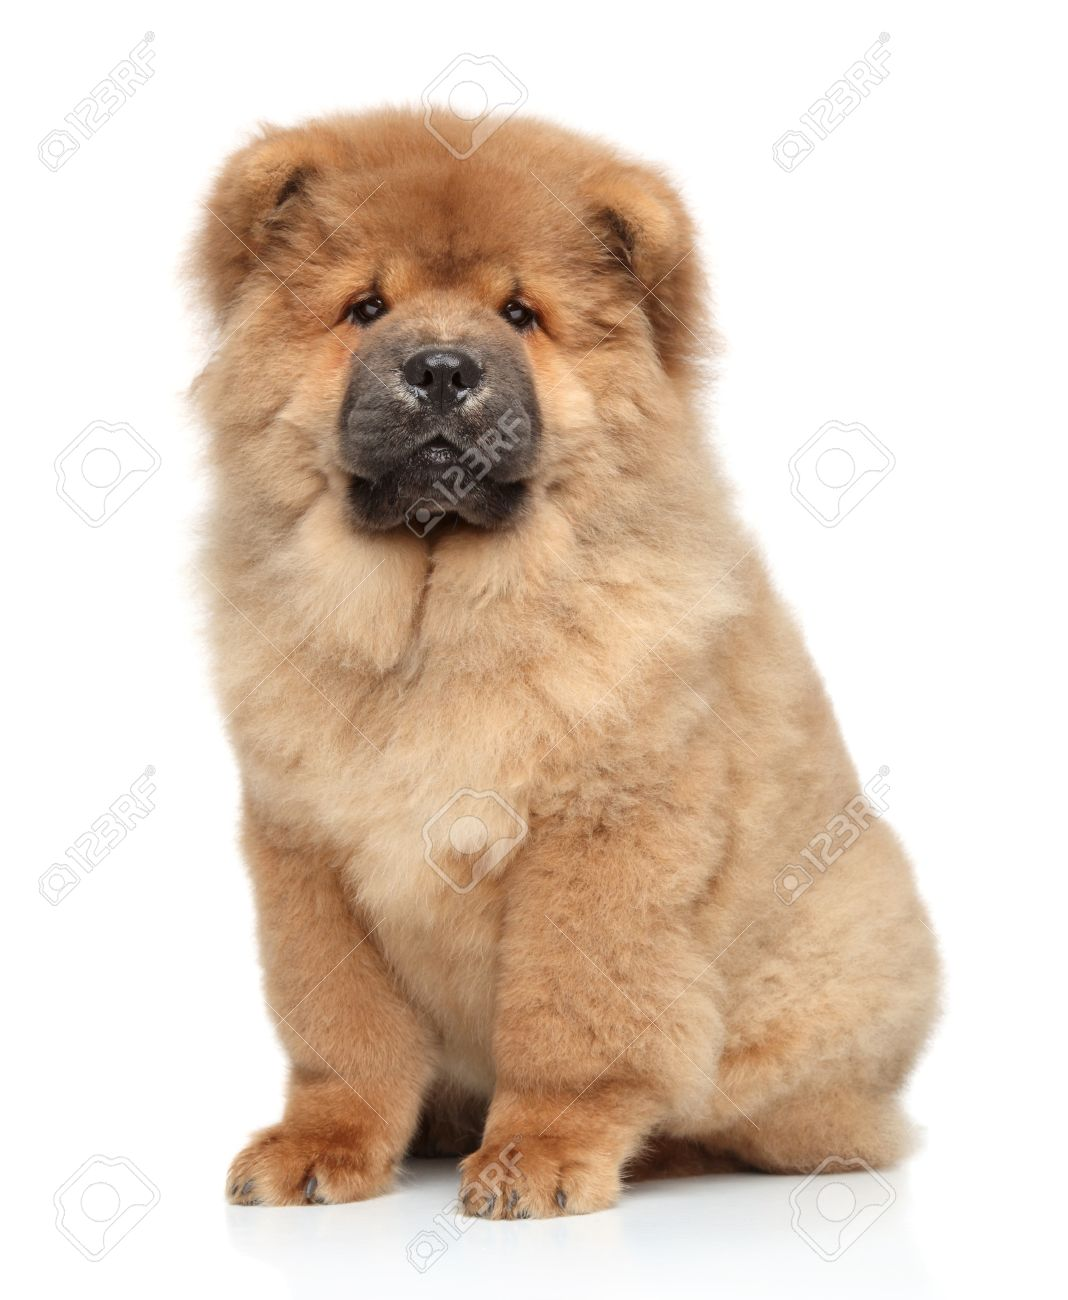 Brown Chow Chow Puppy Portrait On White Background Stock Photo